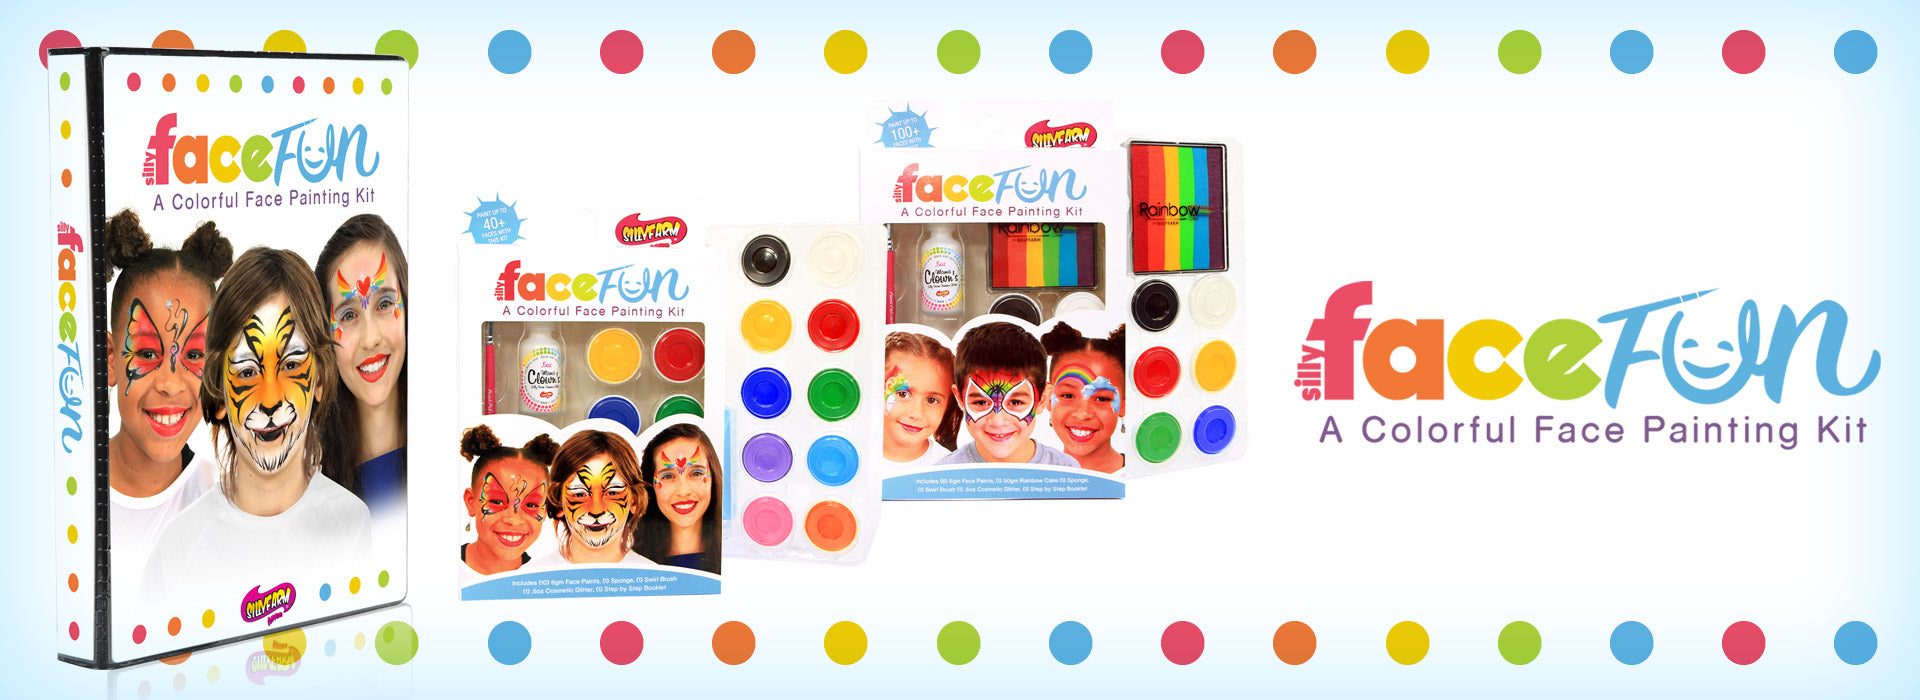 Silly Face Fun Face Painting Kits